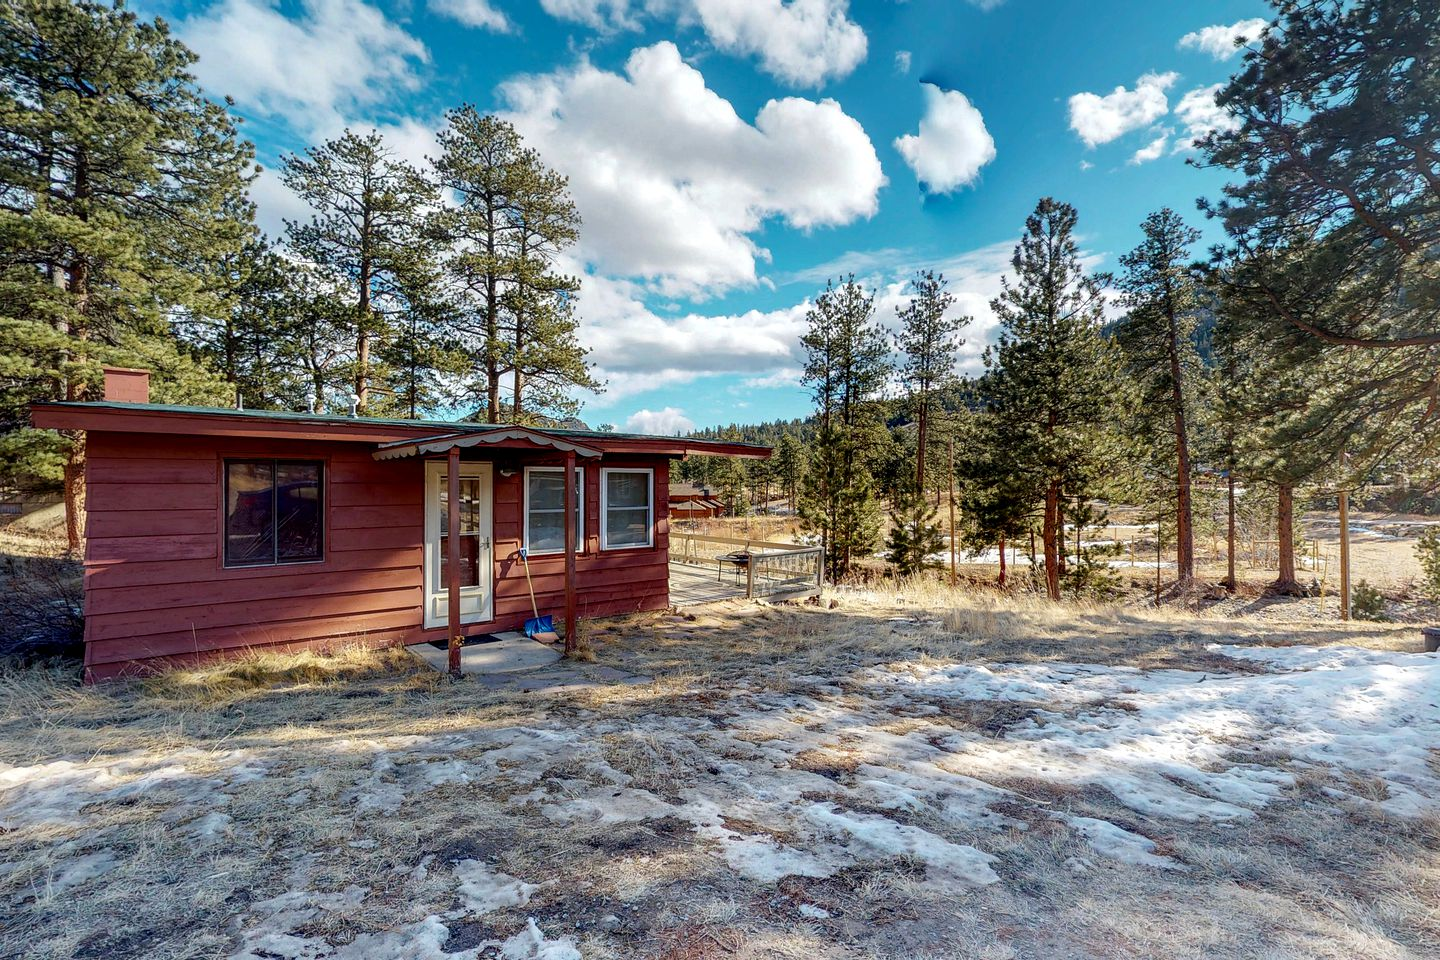 Estes Park lodging and dog-friendly cabin in a field, surrounded by pine trees.